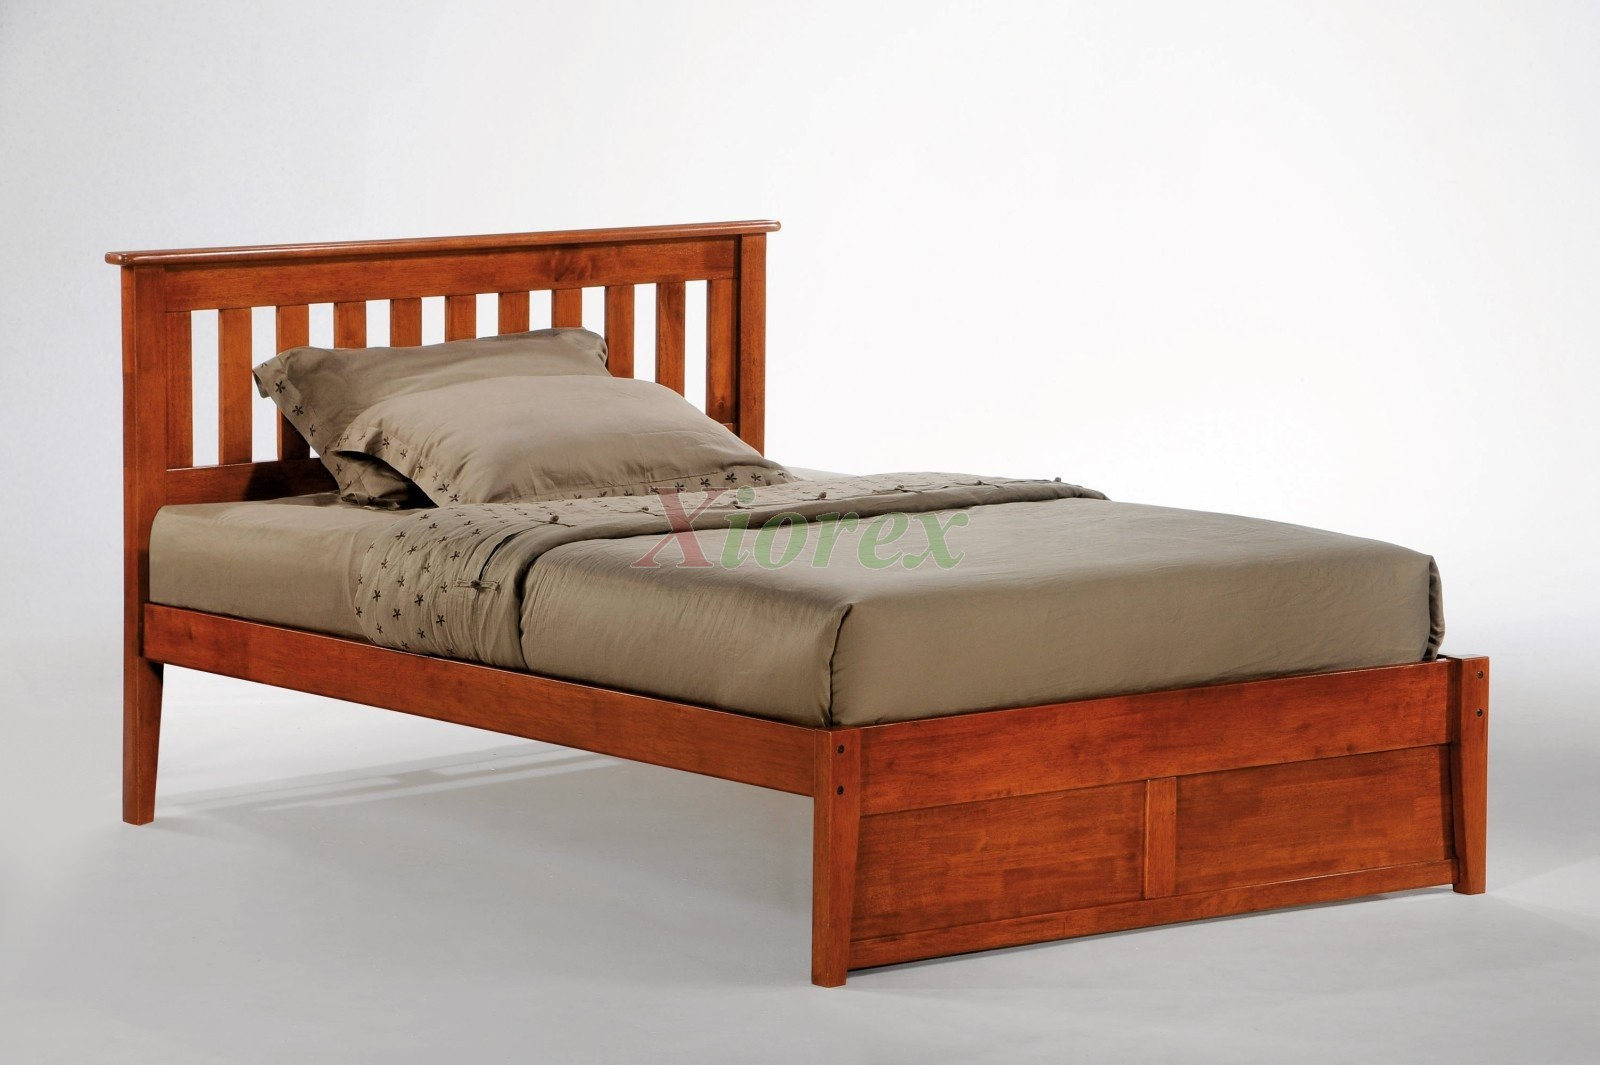 rosemary_bed_full_size_cherry_slat_headboard_bed_xiorex_wood_beds.jpg